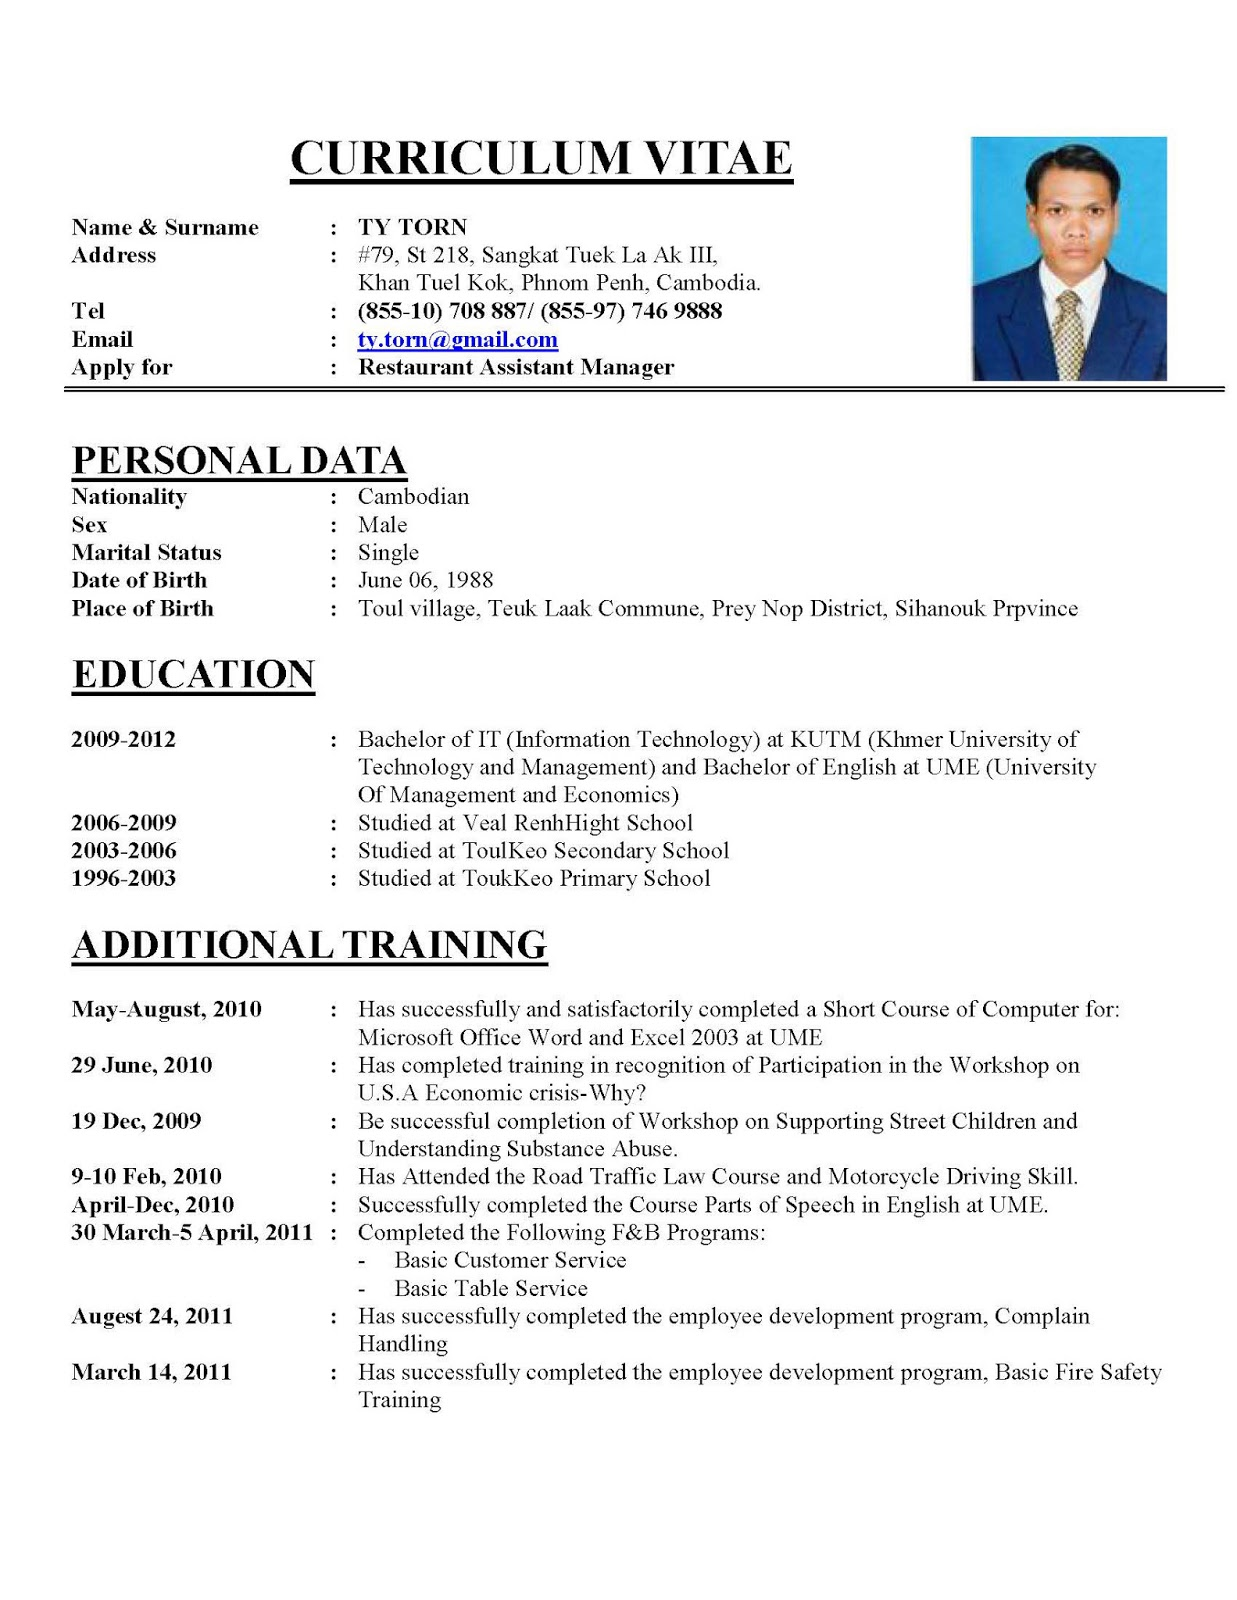 How To Build A Resume For Dummies How To Build A Small Building For Dummies Built In Few Tips On Writing A Perfect Curriculum Vitae